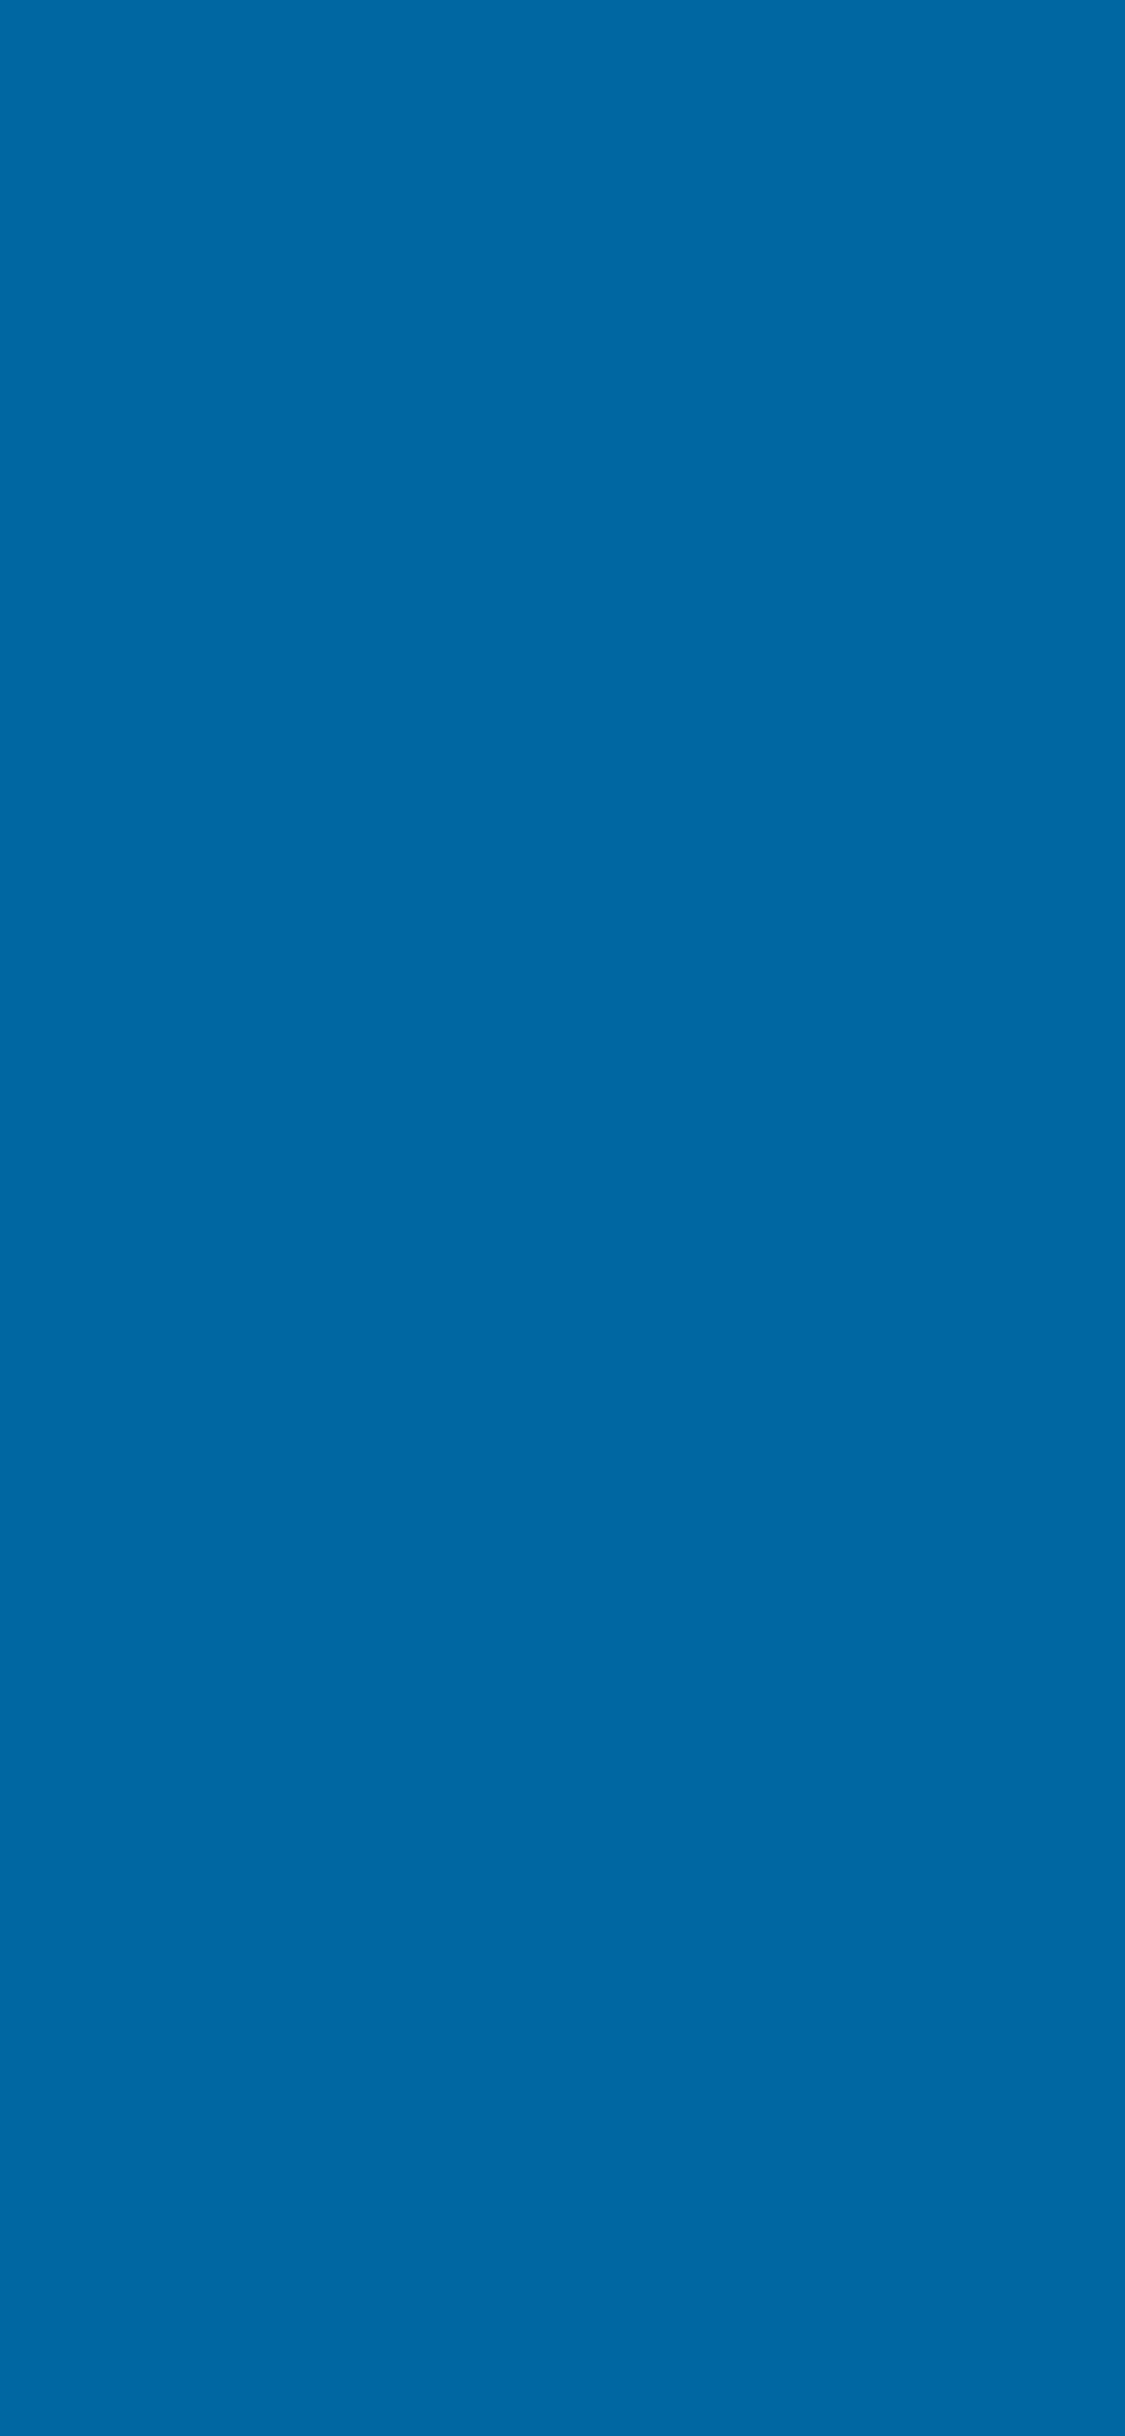 1125x2436 Sapphire Blue Solid Color Background